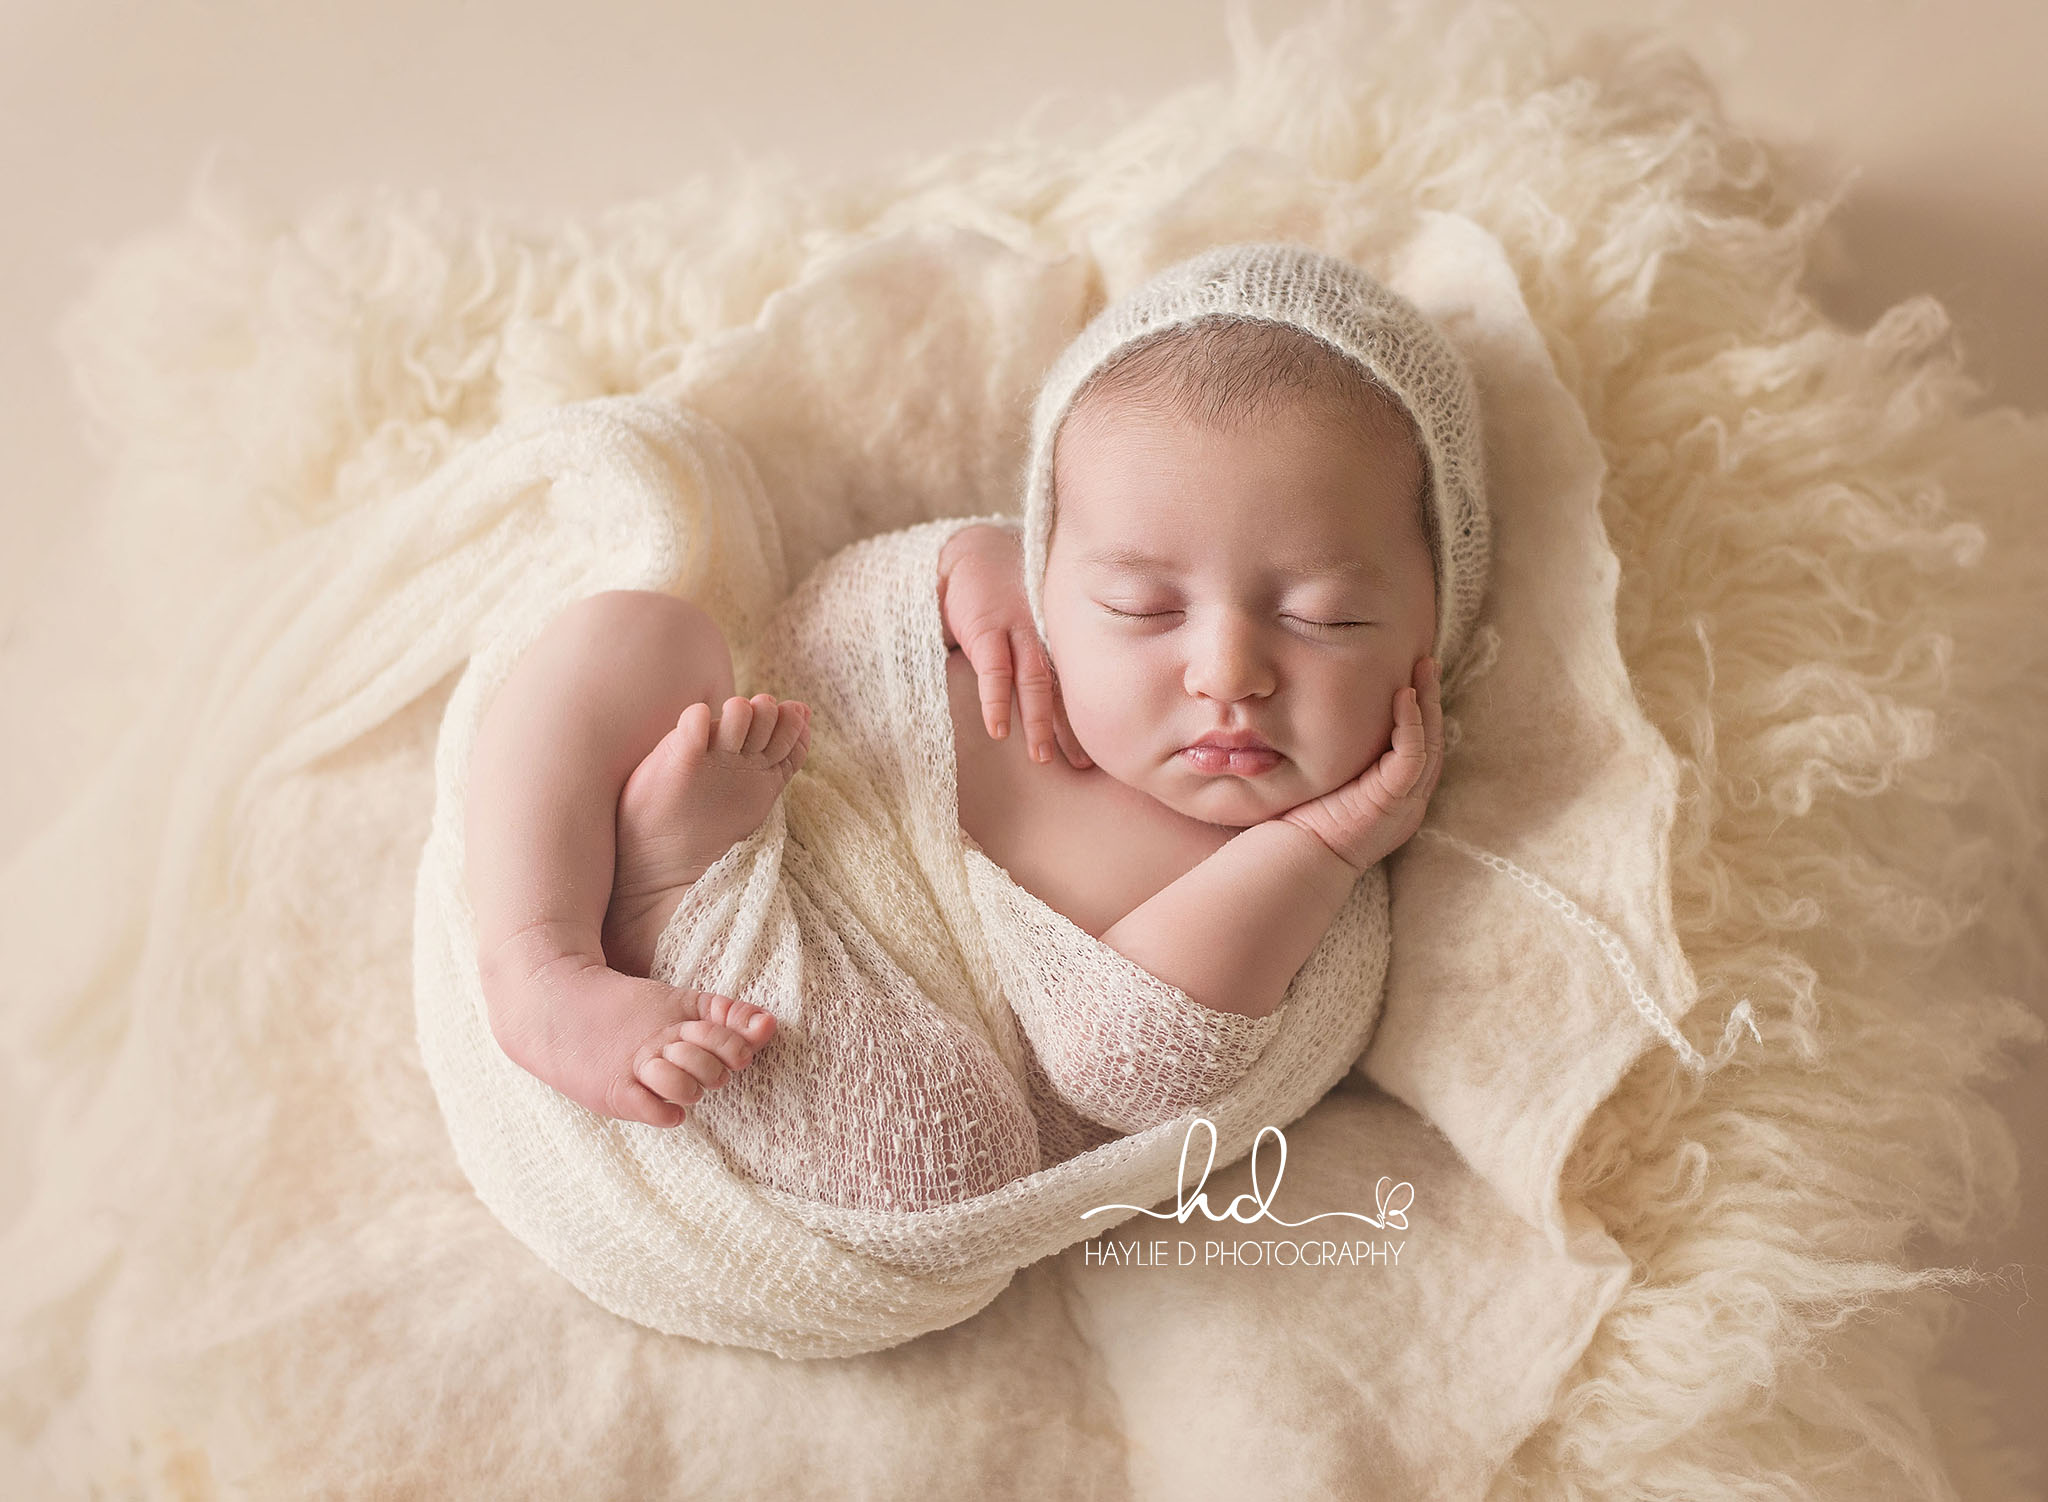 gold coast baby photographer haylie D